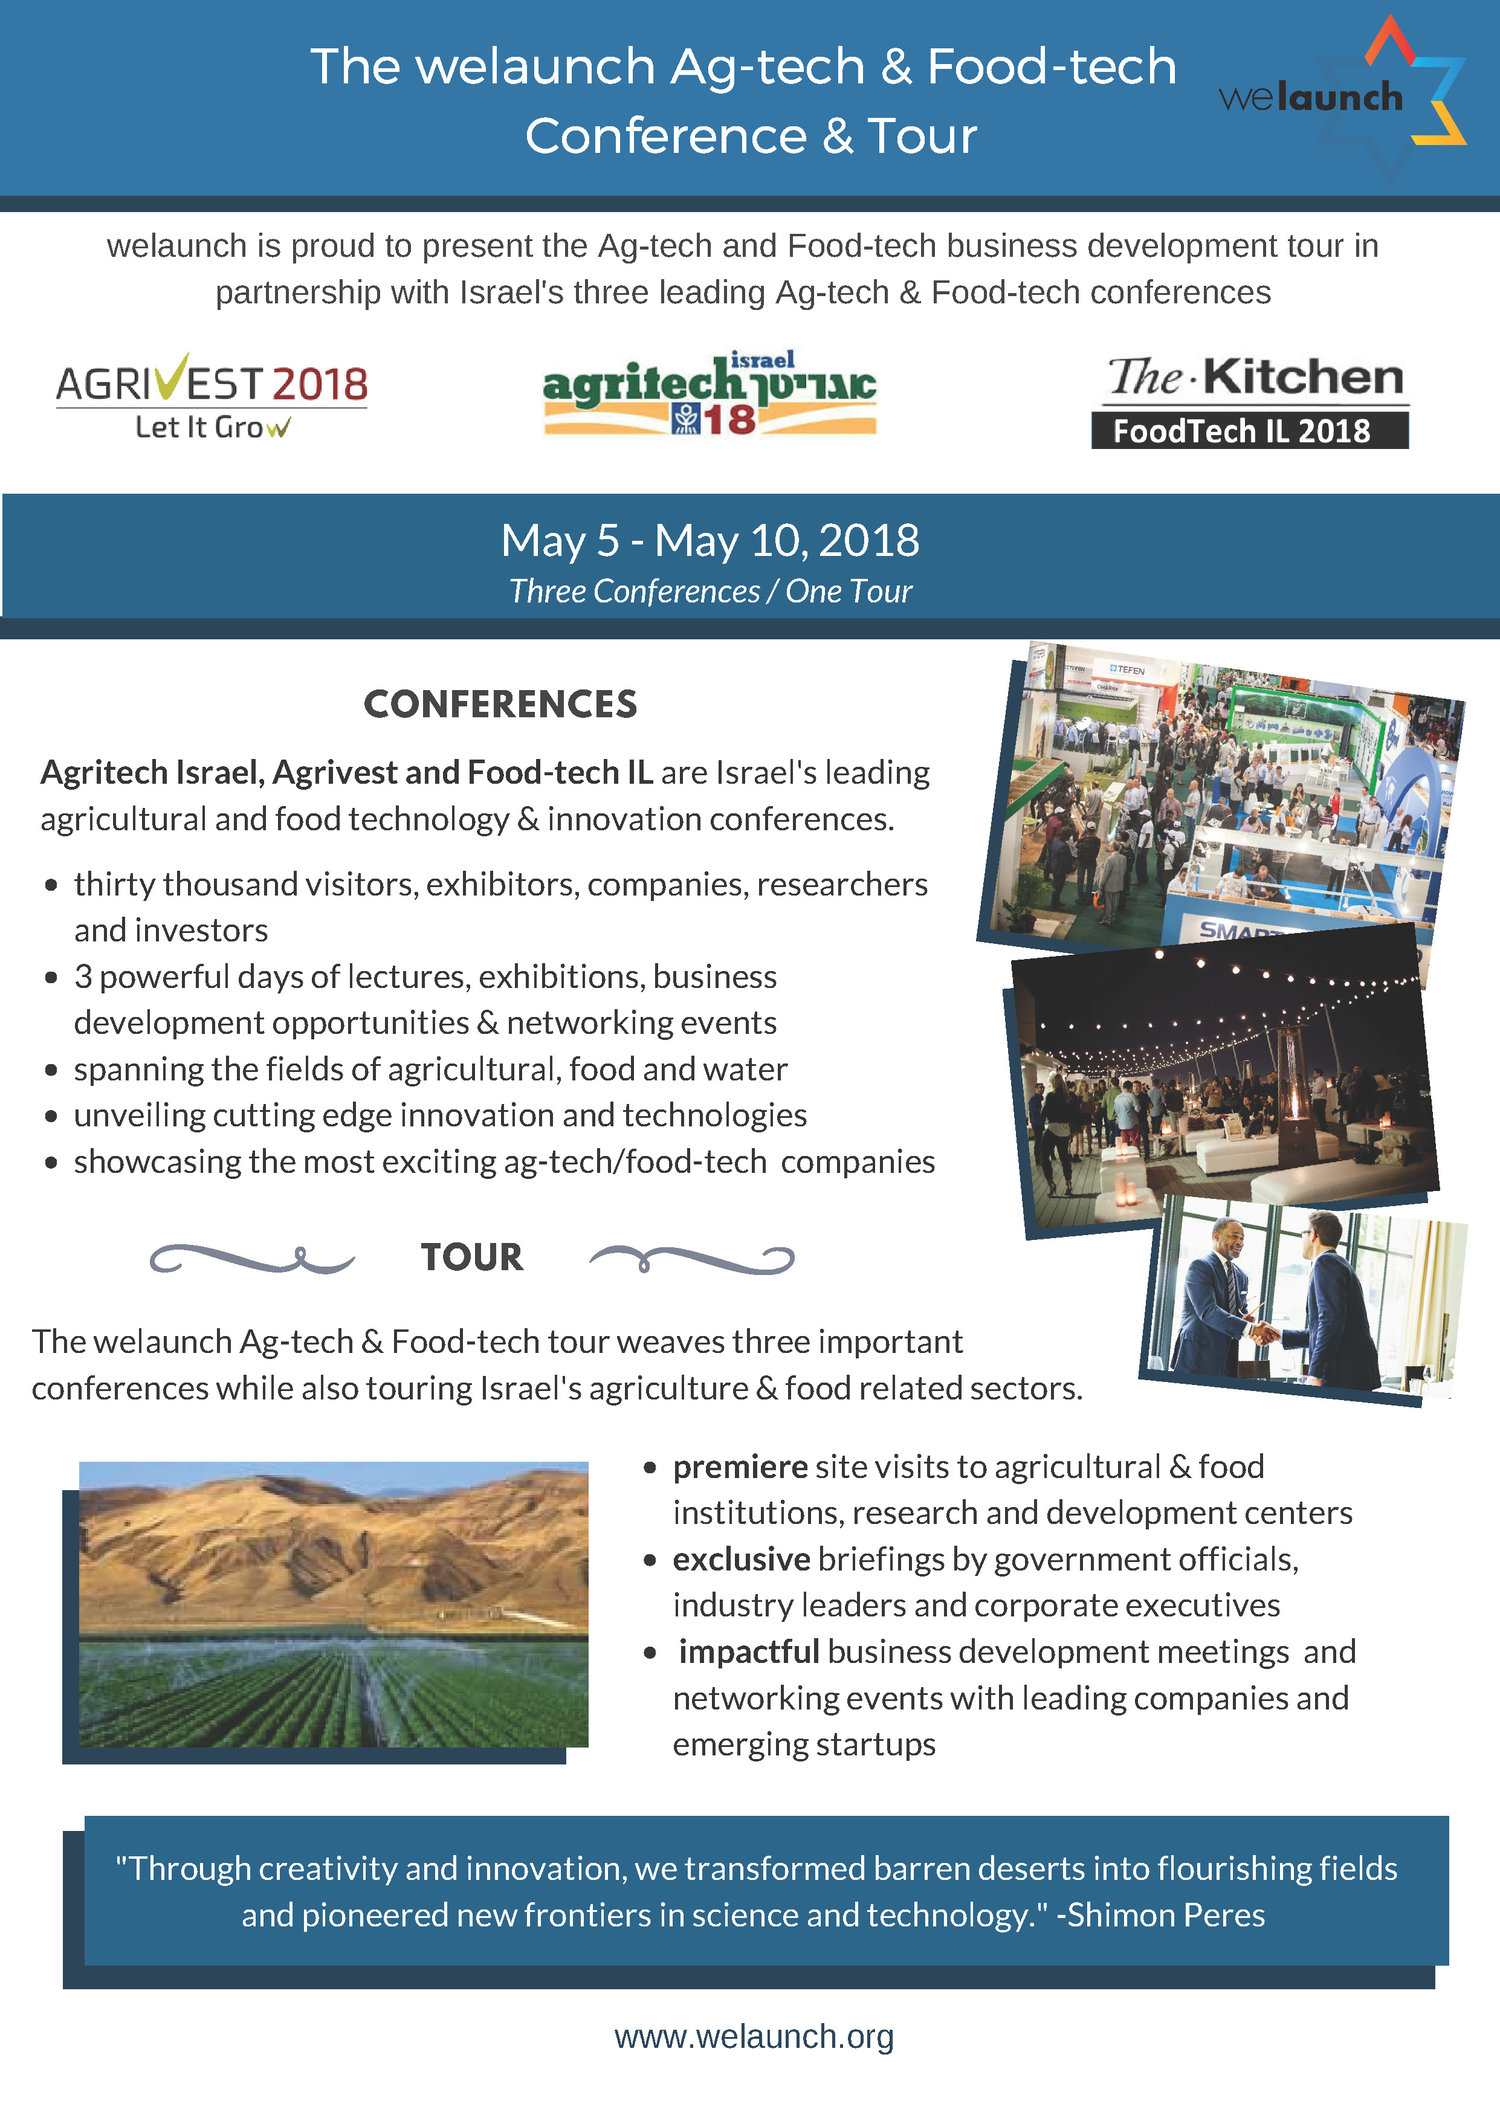 The welaunch Ag-tech & Food-tech Conference & Tour in Israel